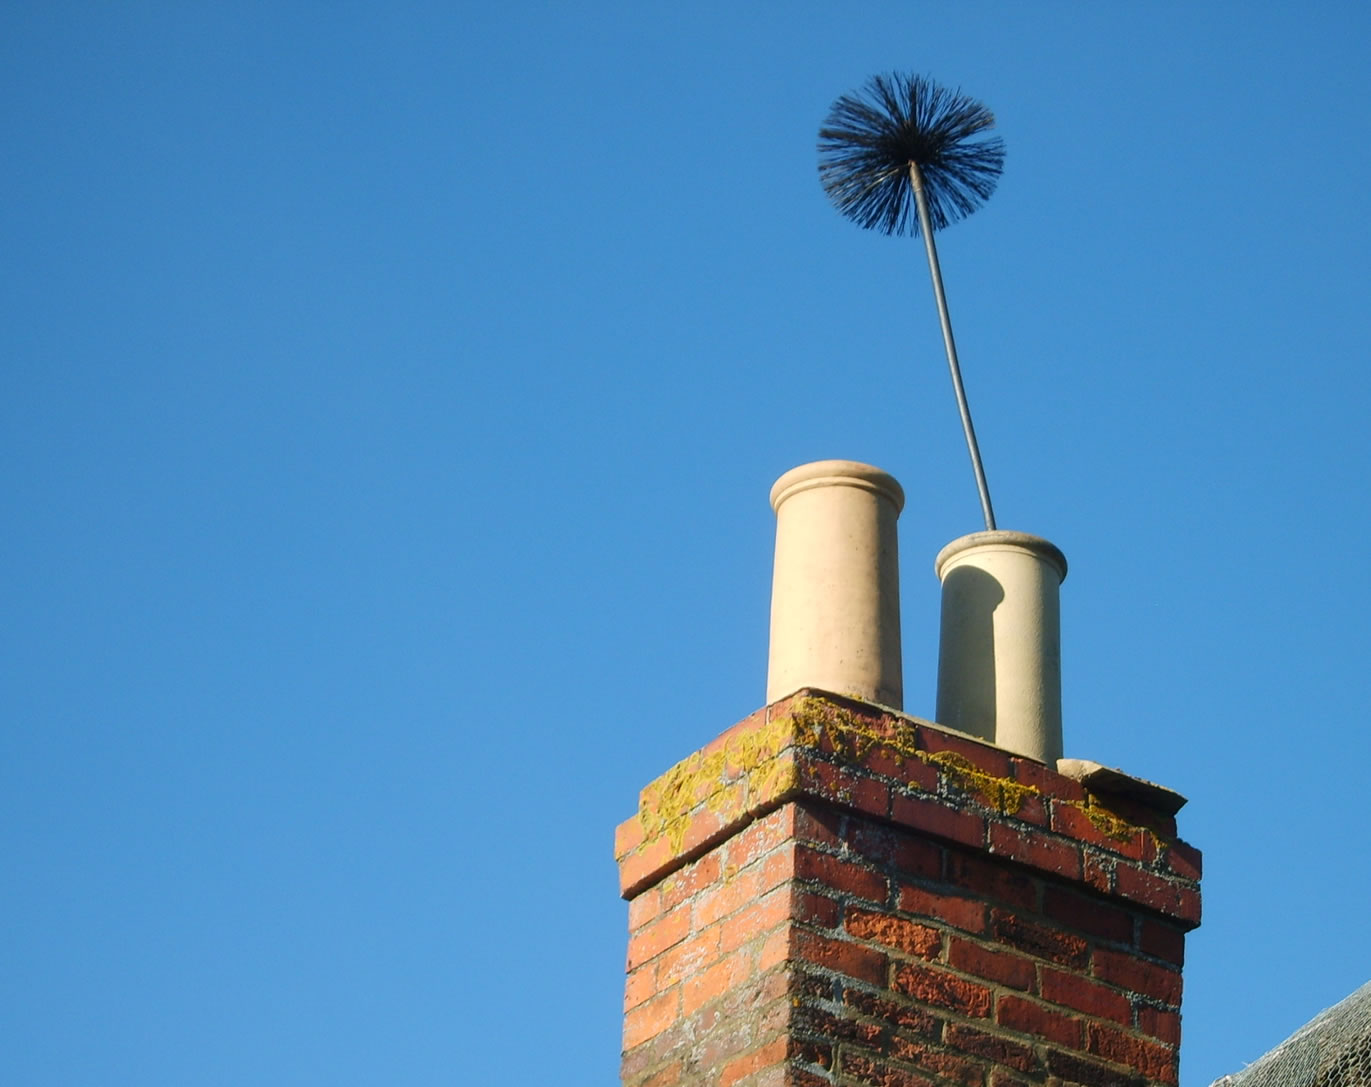 a chimney sweeping brush